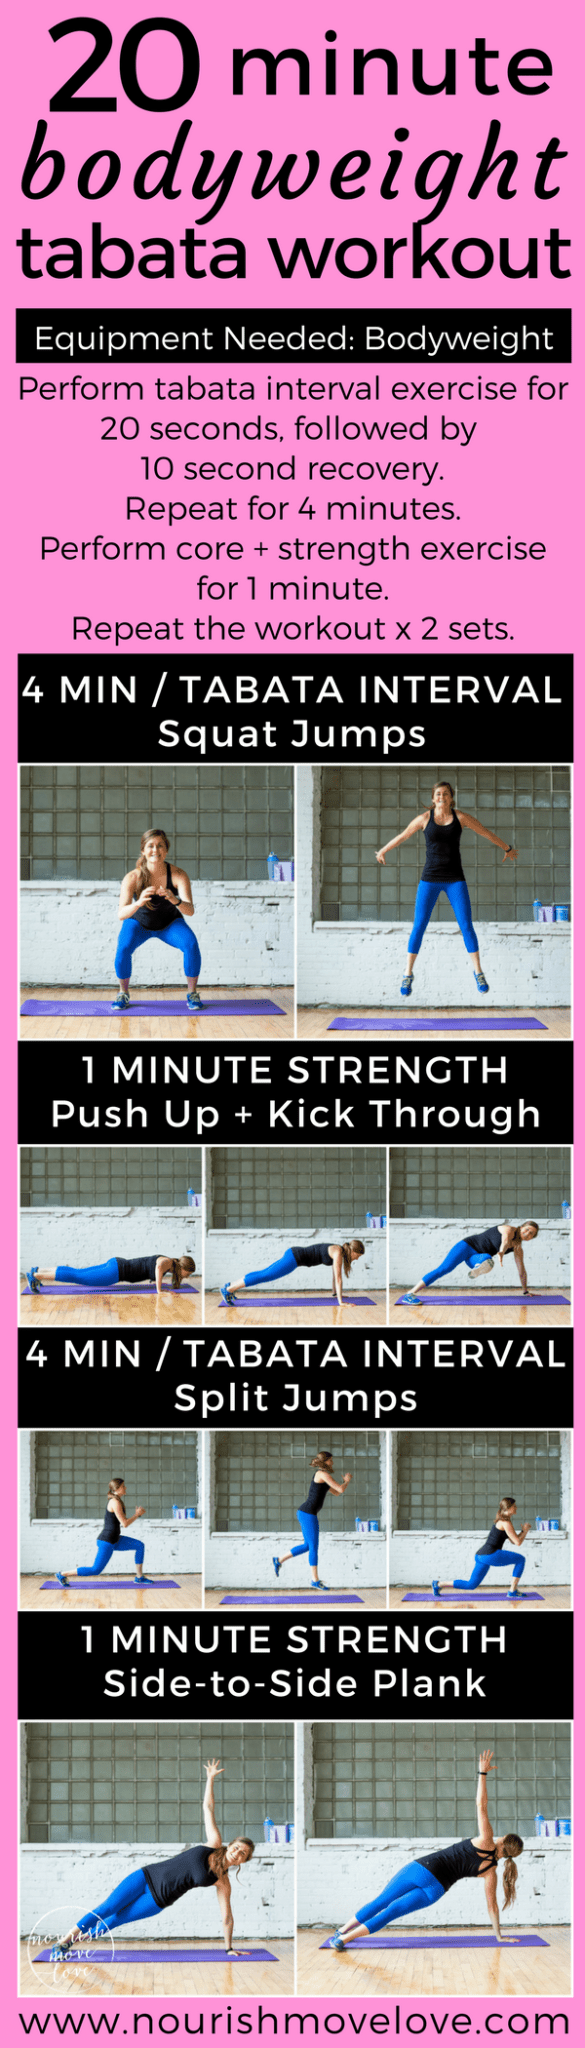 20-Minute Bodyweight Tabata Workout | www.nourishmovelove.com